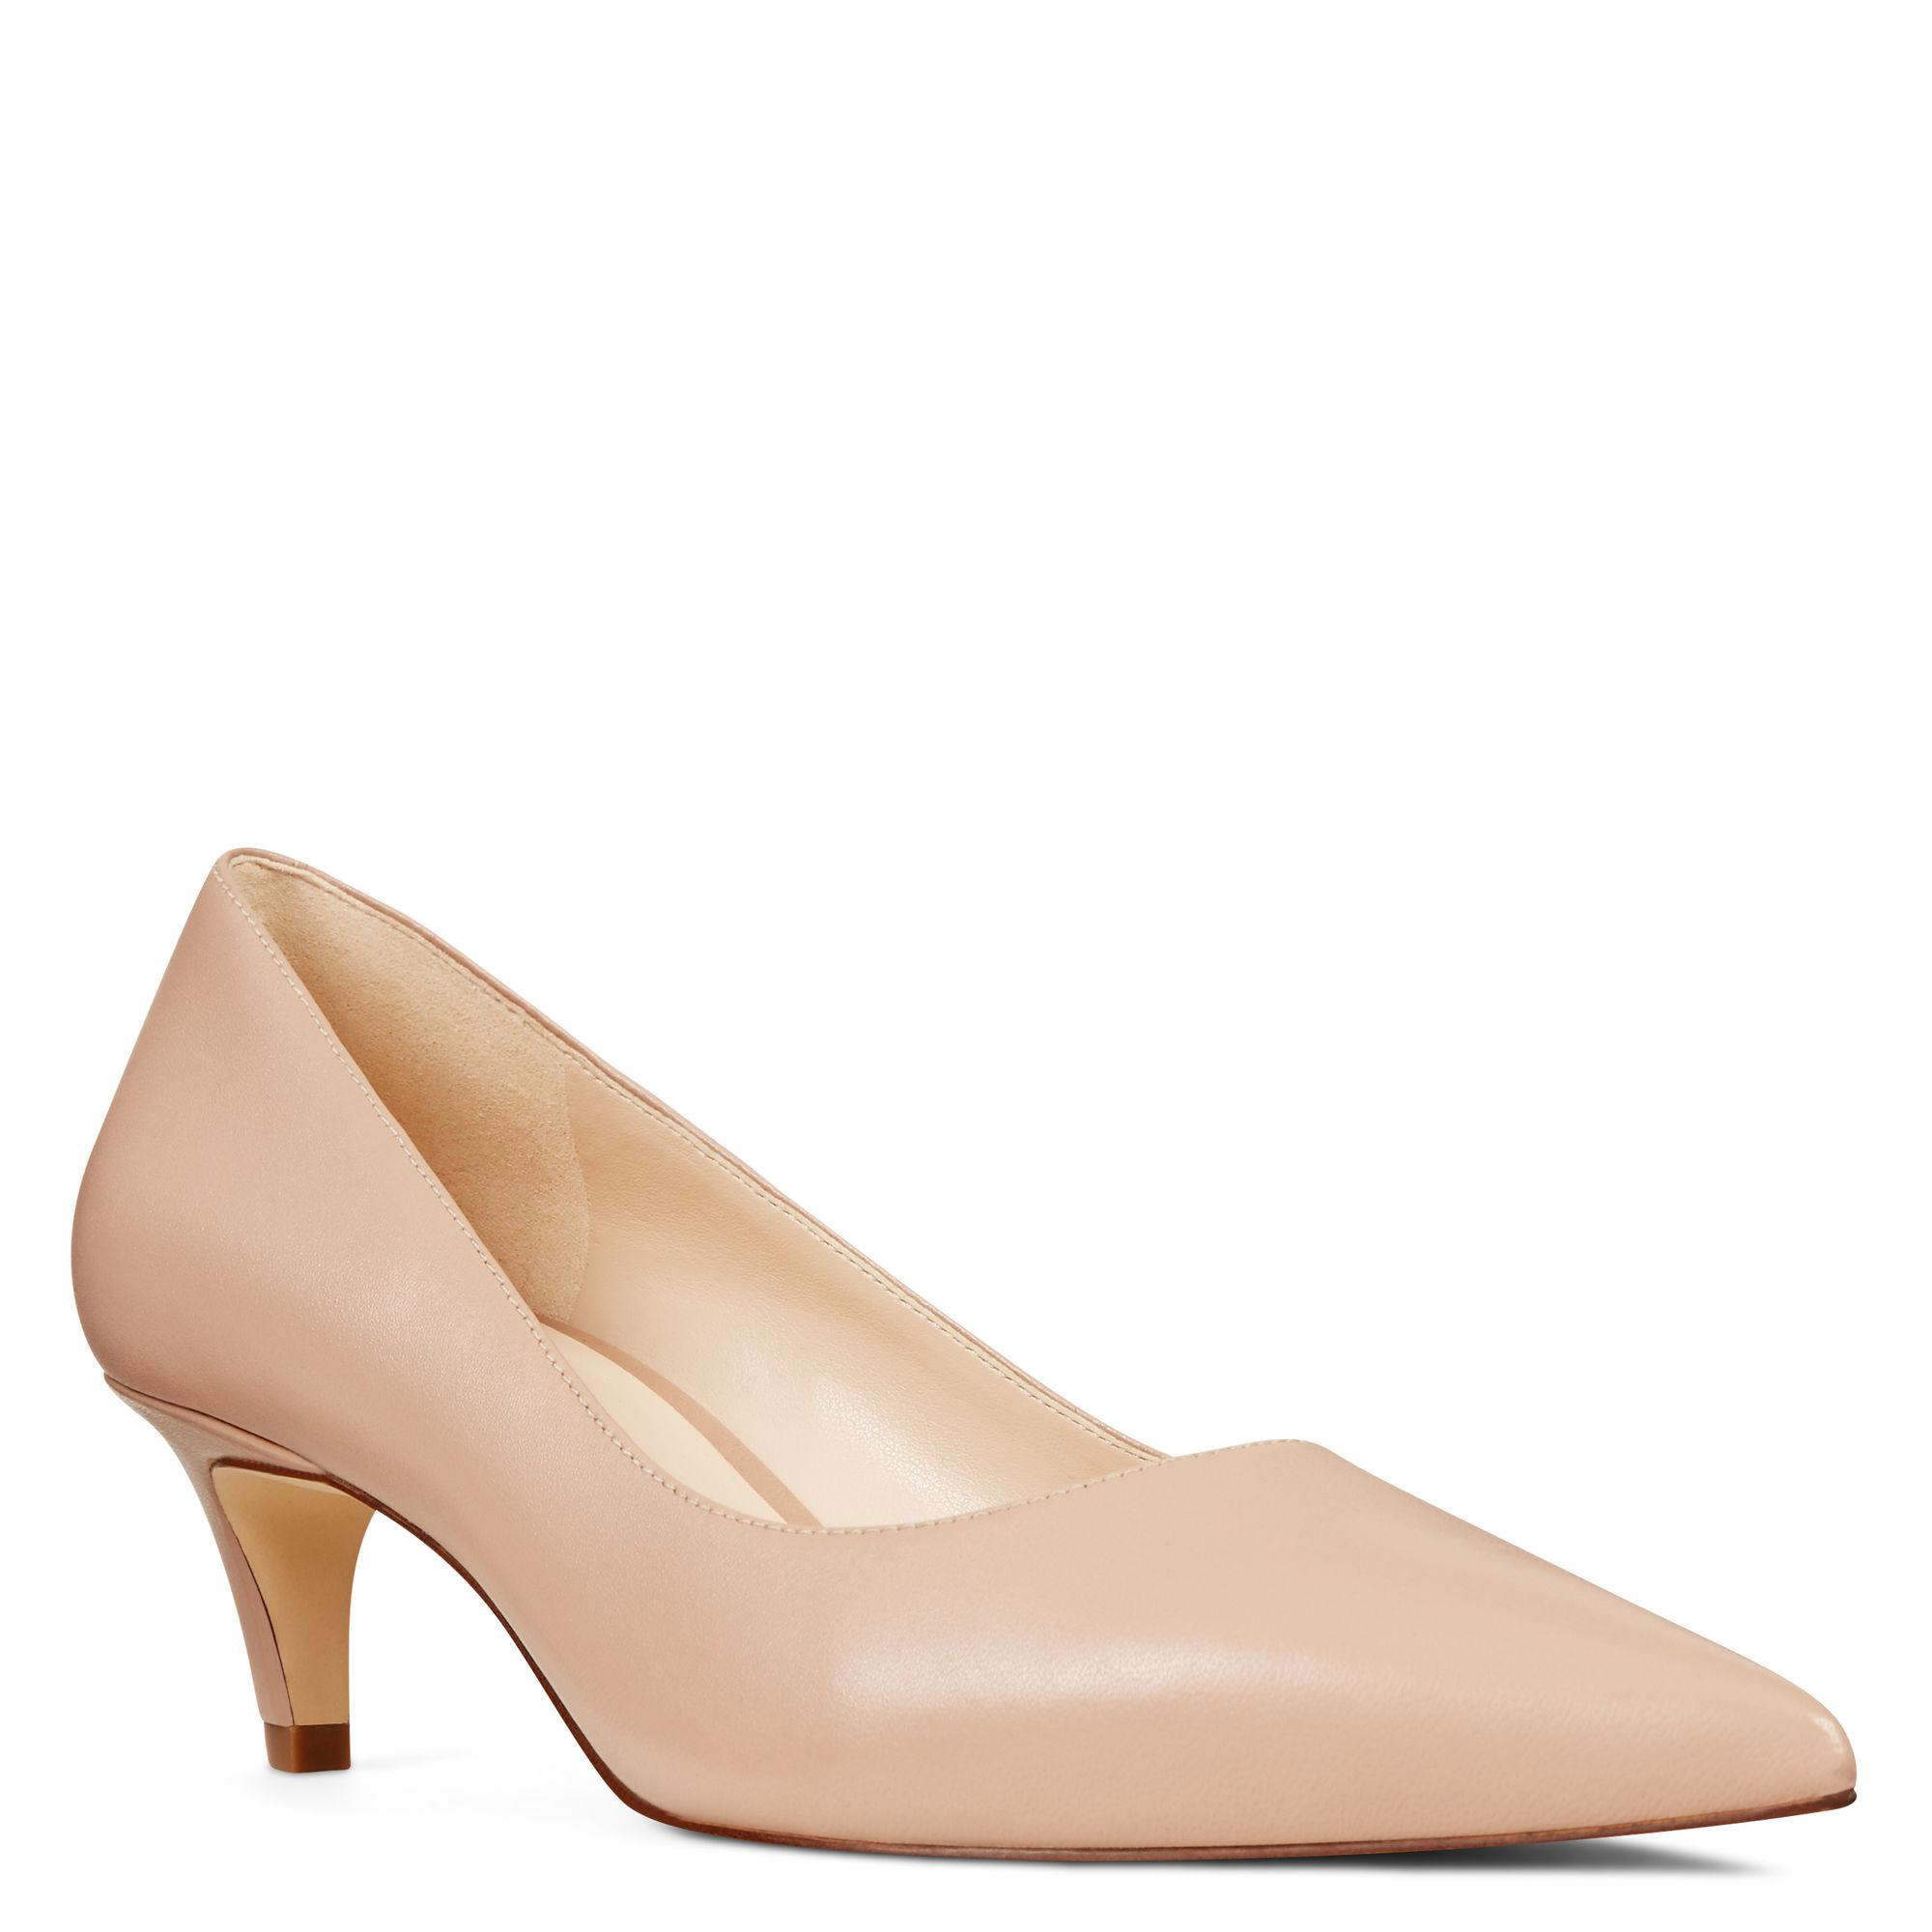 eb56edf8a4 Nine West Quan Pointy Toe Pumps in Natural - Lyst